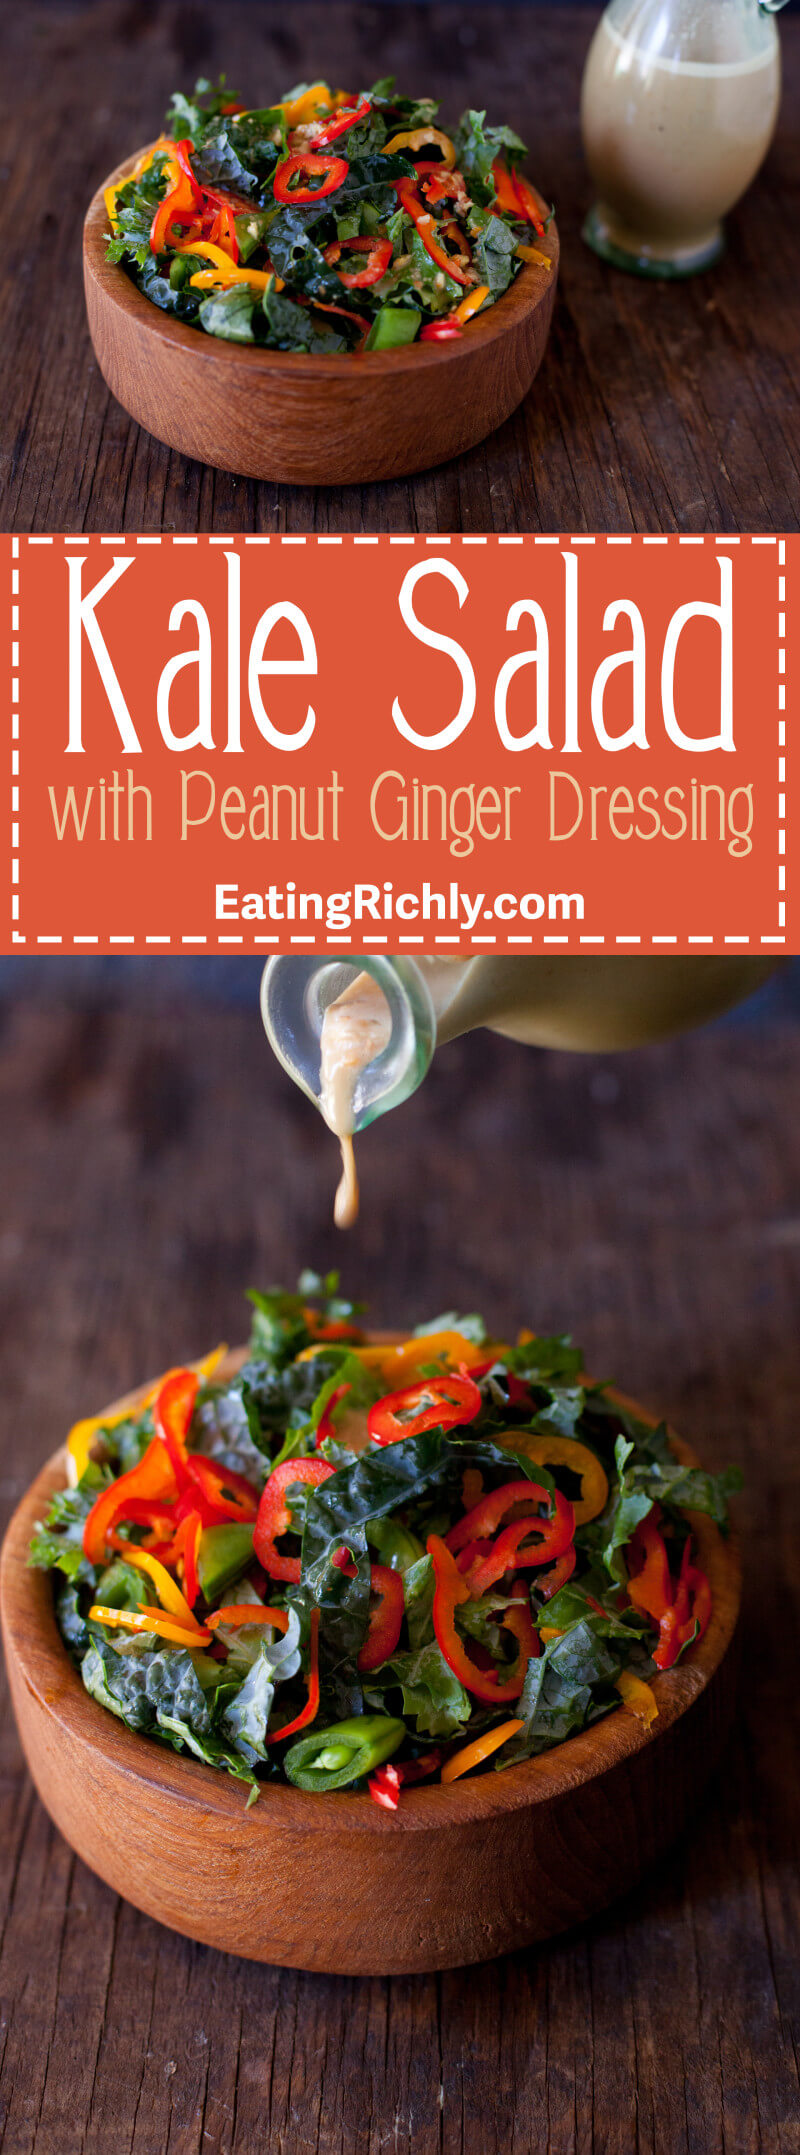 Healthy Asian kale salad recipe that's vegan, gluten free, and so easy to make.